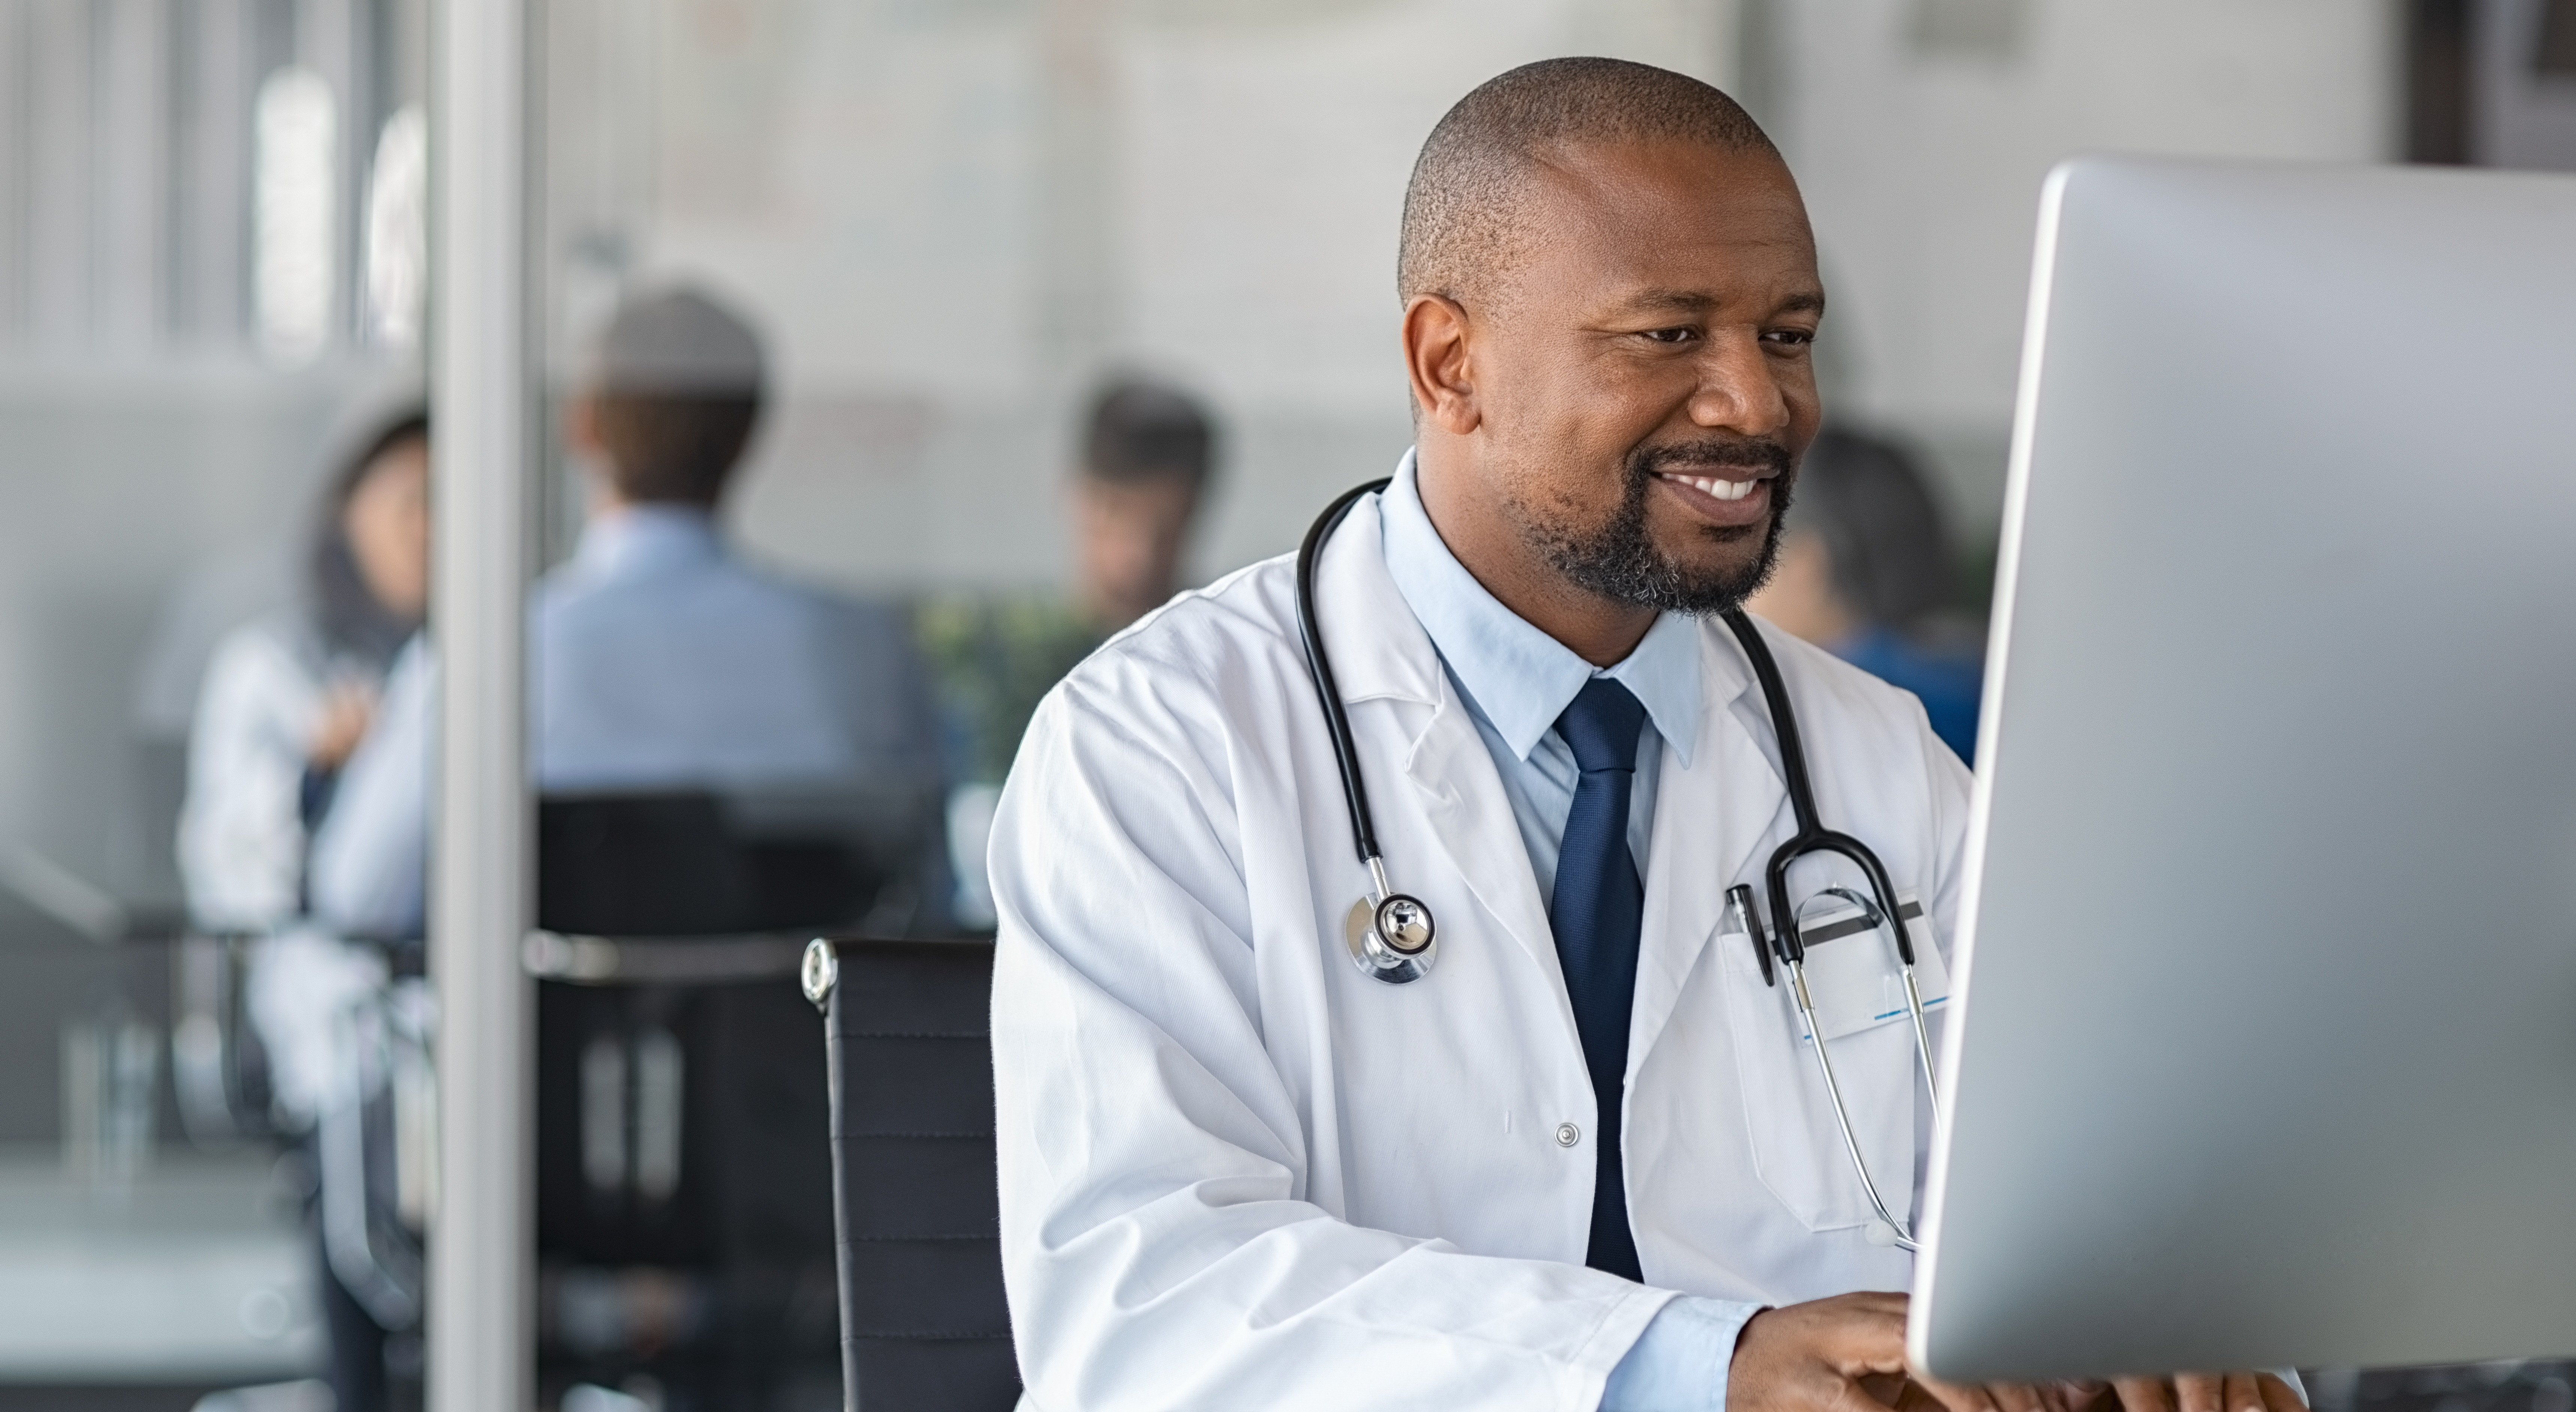 Healthcare professional working